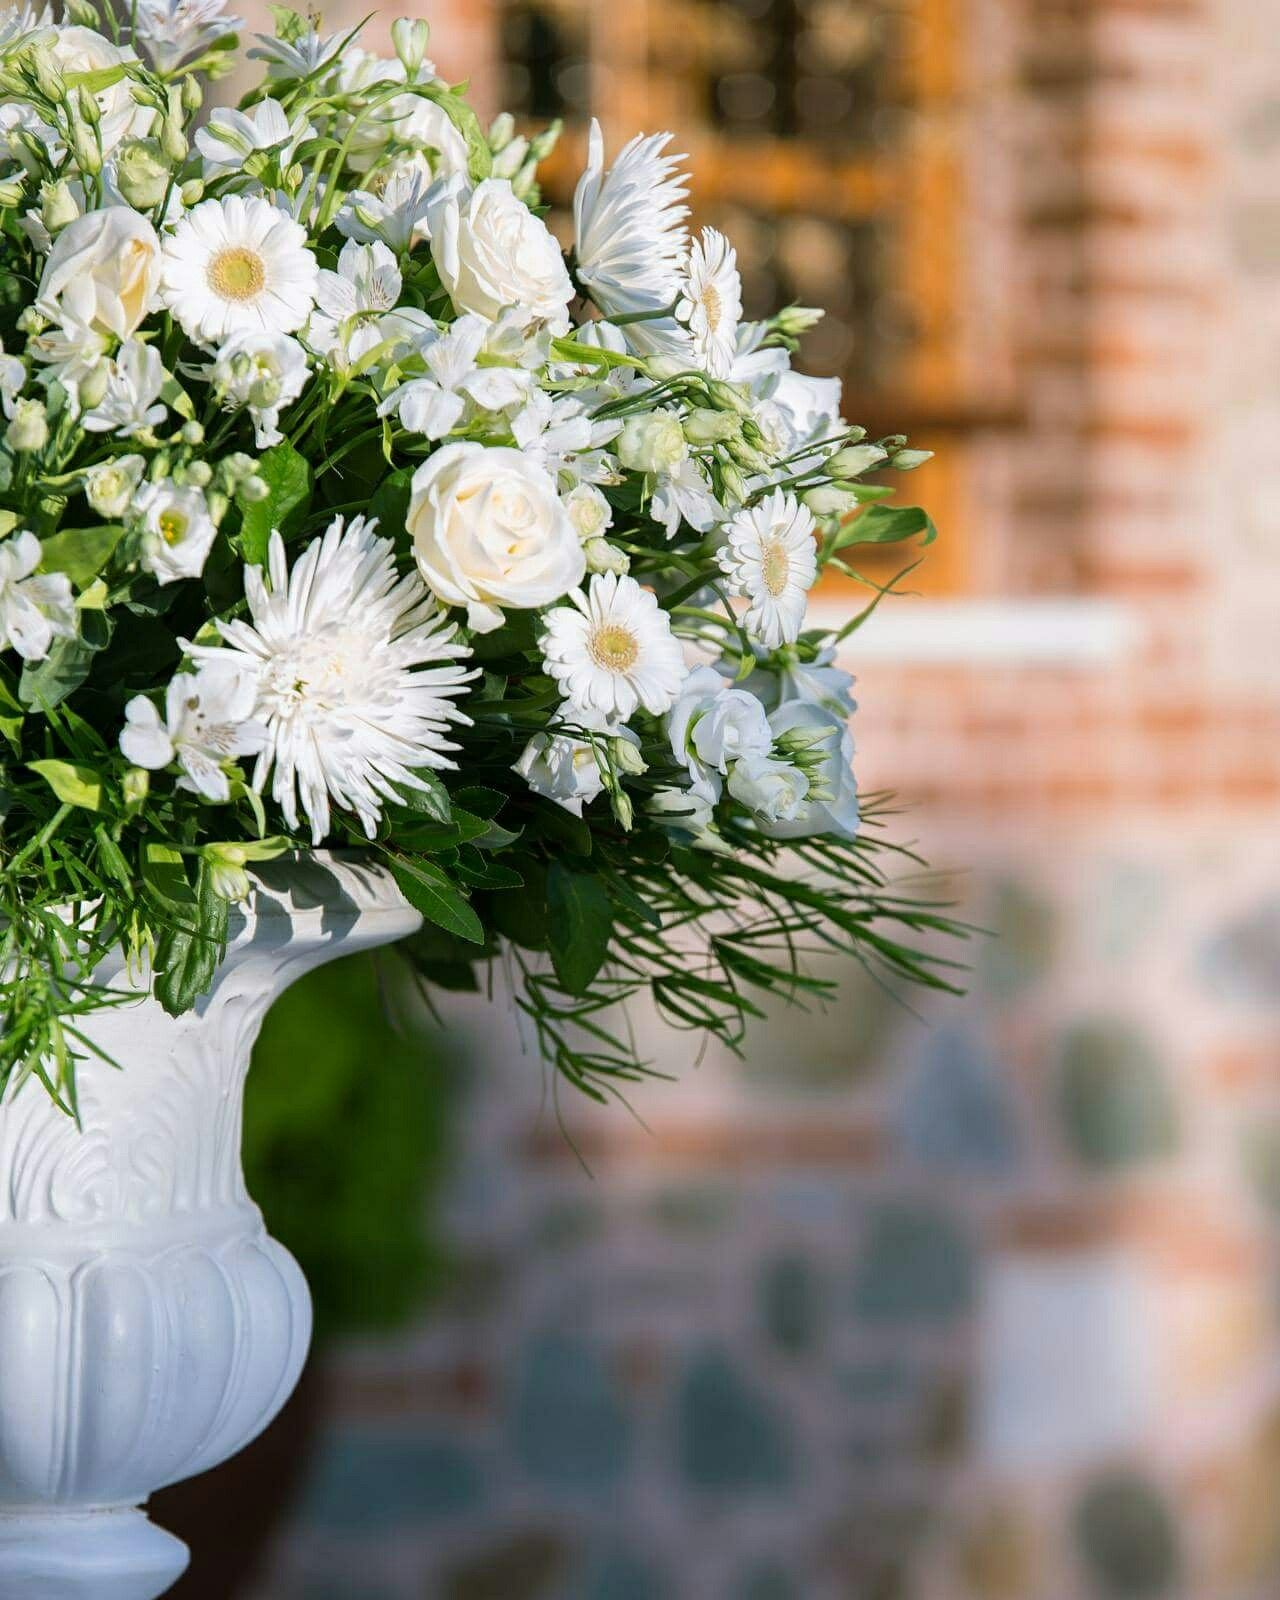 Choose Your Wedding Flowers Based On Emotions